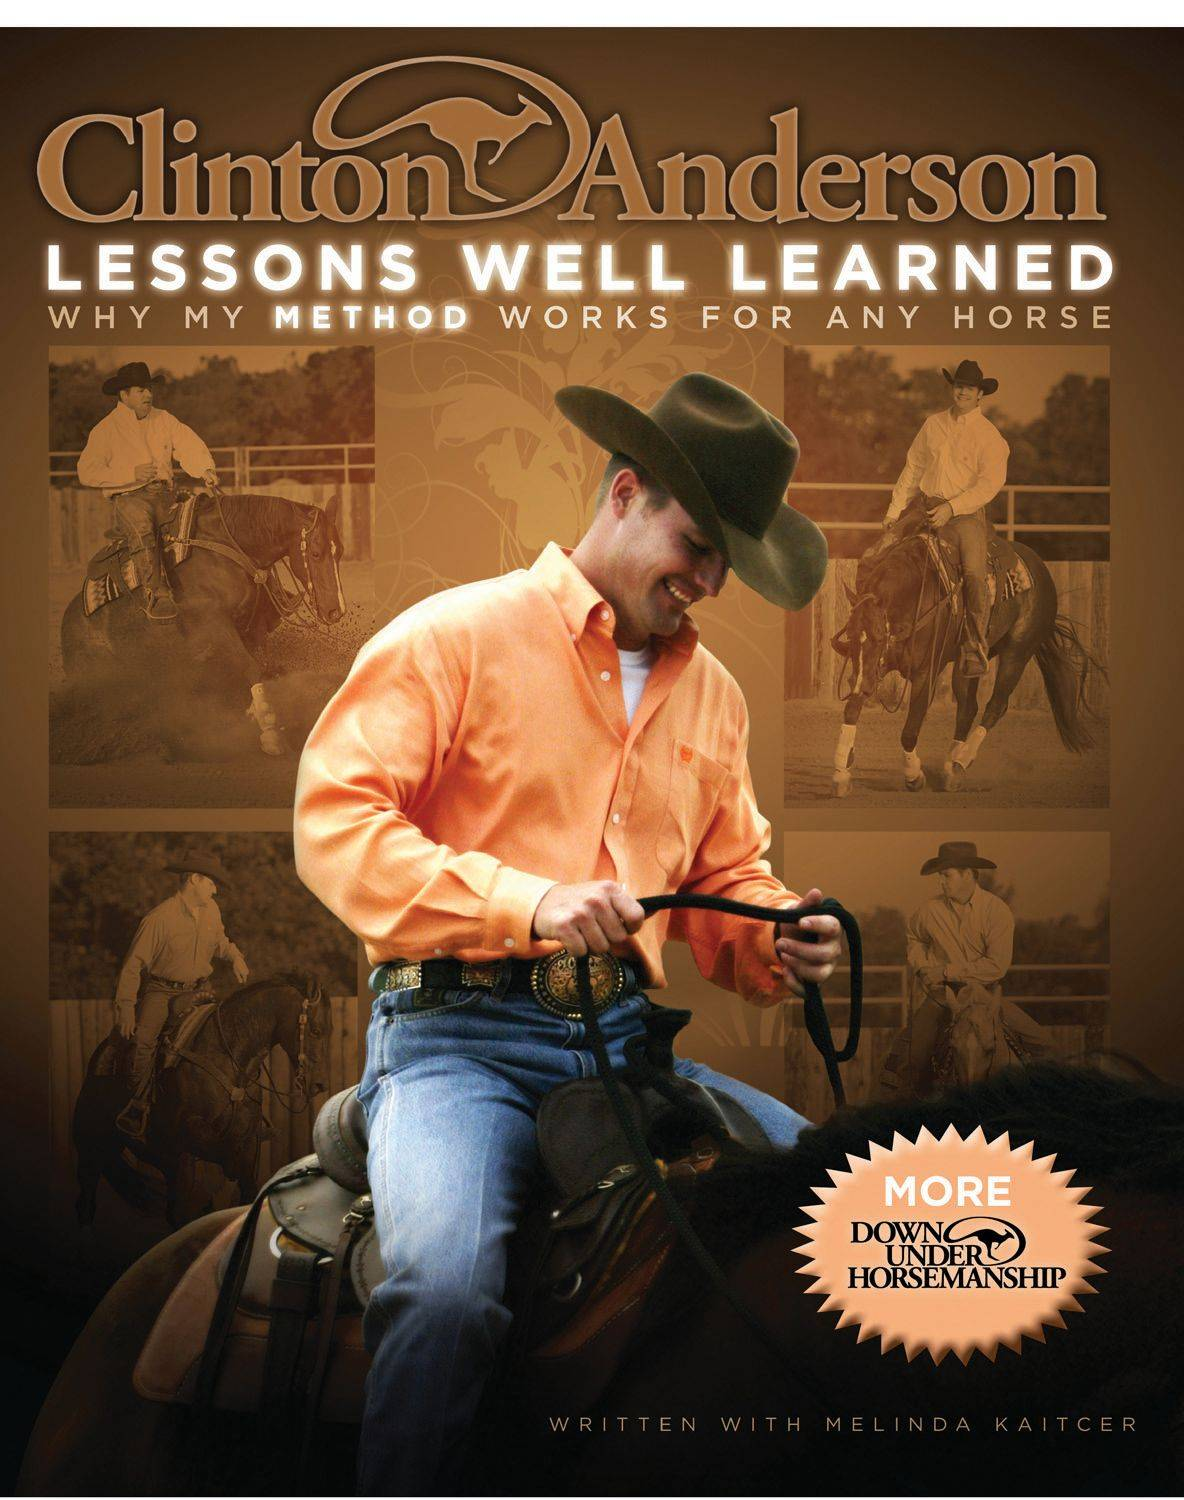 Lessons Well Learned by Clinton Anderson